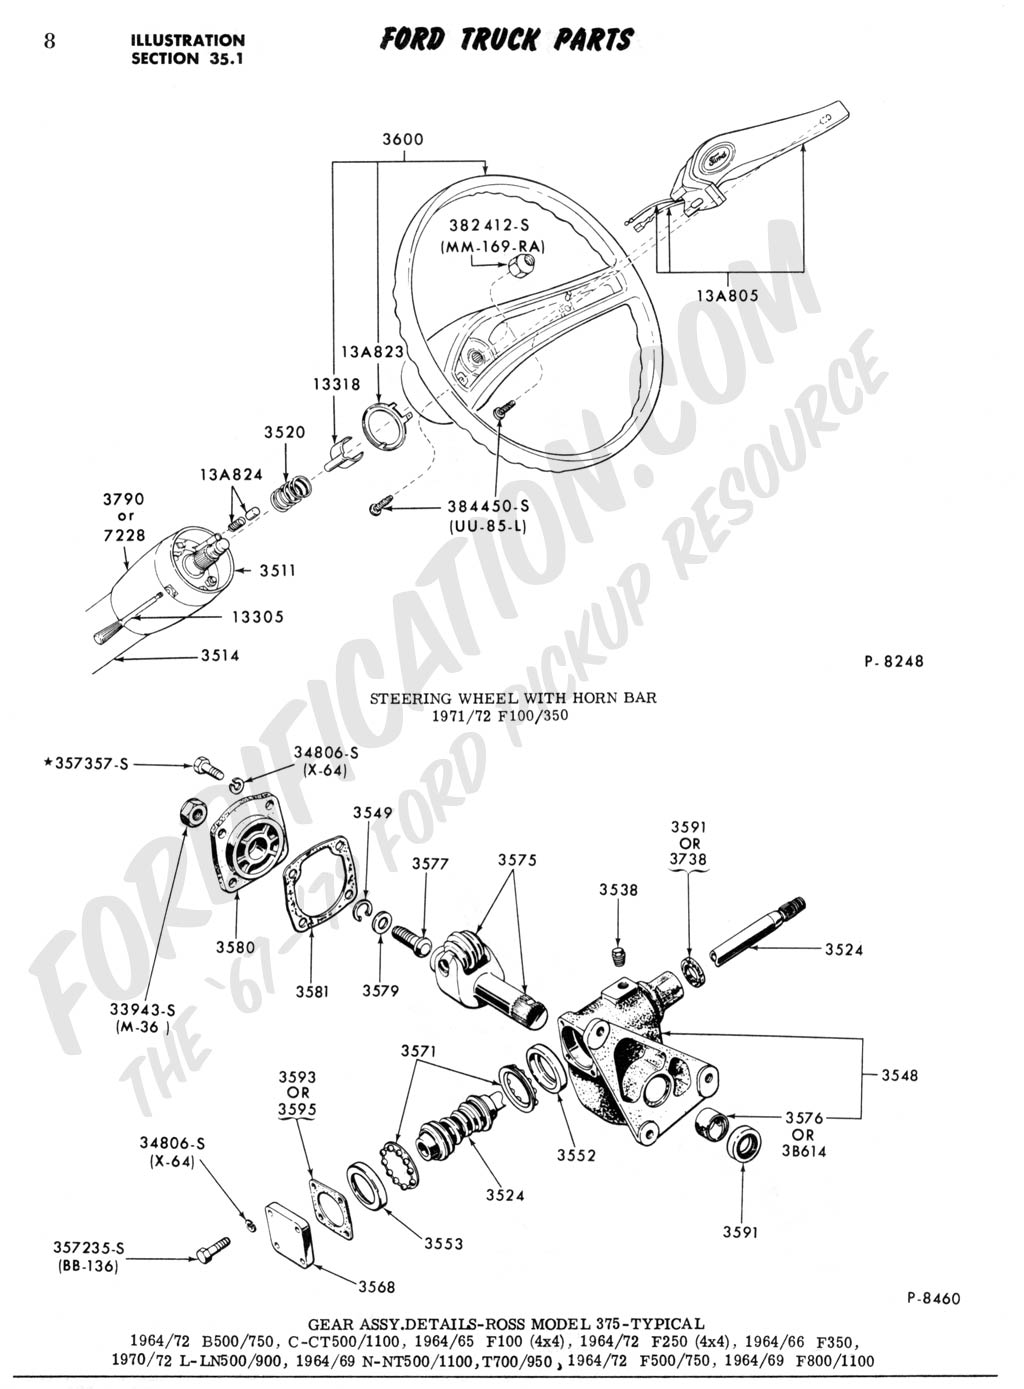 Ford Truck Technical Drawings and Schematics - Section C - Steering Systems  and Related Components | 1965 Ford Steering Column Wiring |  | FORDification.com